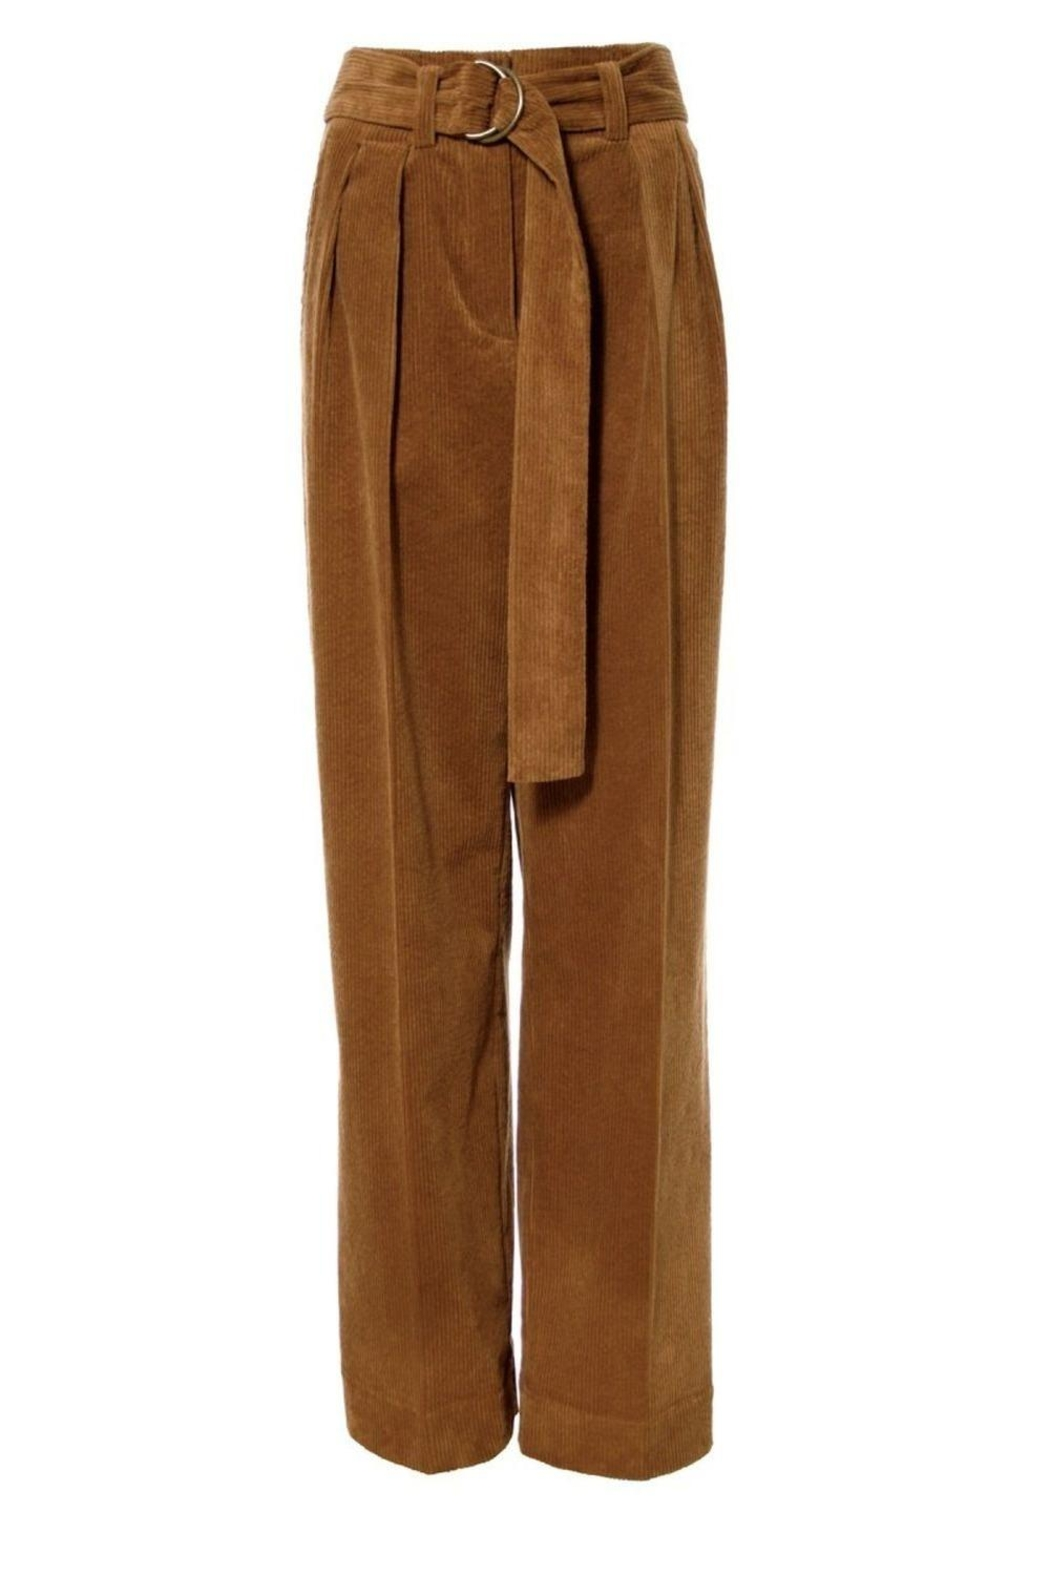 AGGI Pants Janice Toffee - Front Full Image